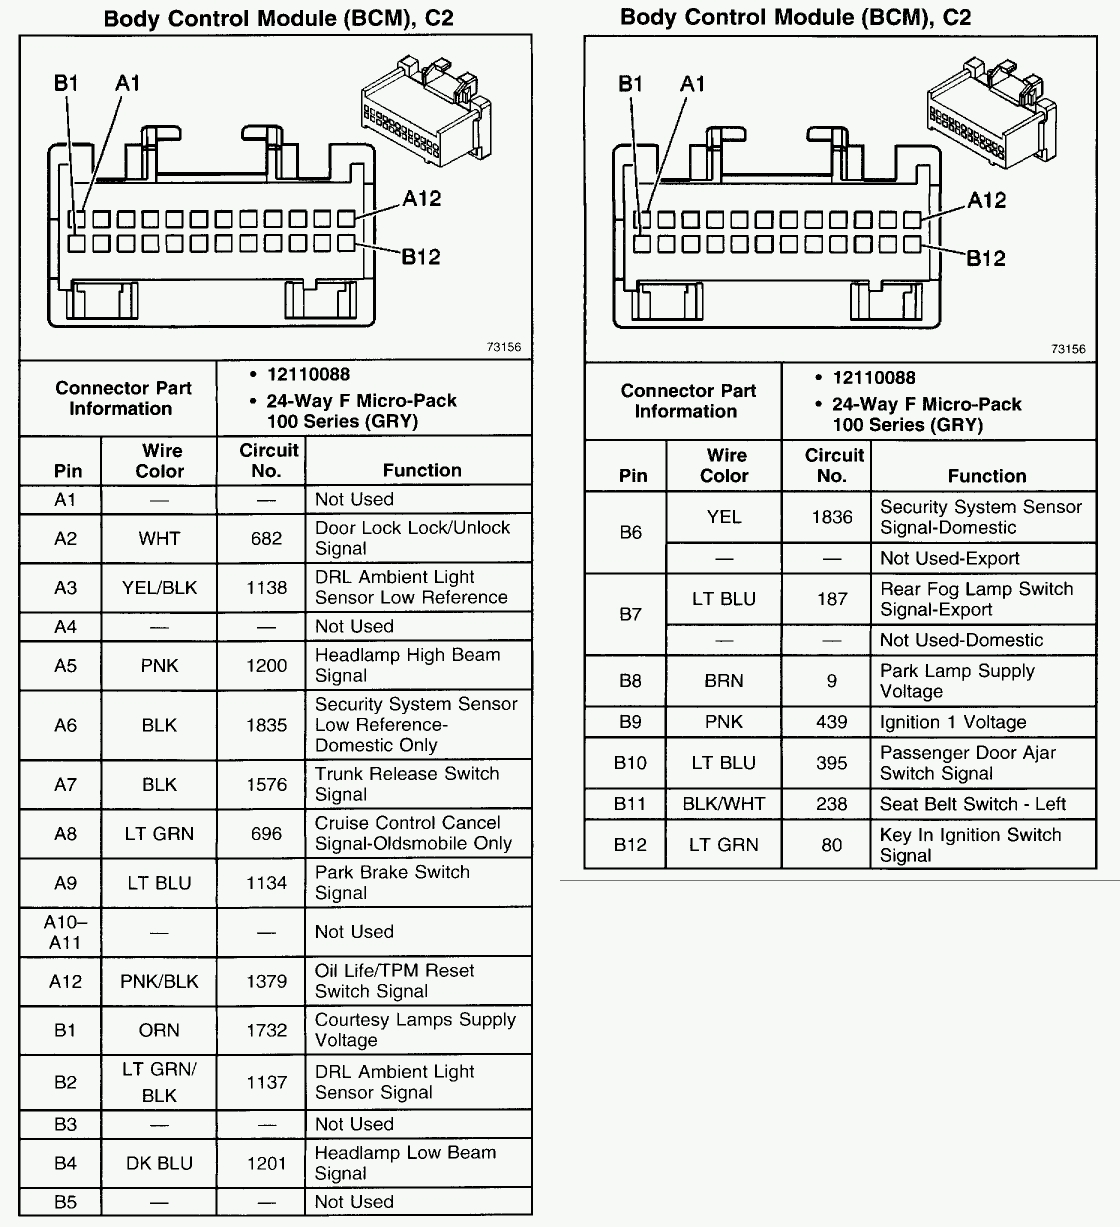 pontiac grand prix radio wiring diagram 2013 07 17 171026 2000 dic intended for 2004 pontiac grand prix parts diagram pontiac grand prix radio wiring diagram 2013 07 17 171026 2000 dic 2000 pontiac grand prix radio wiring diagram at readyjetset.co